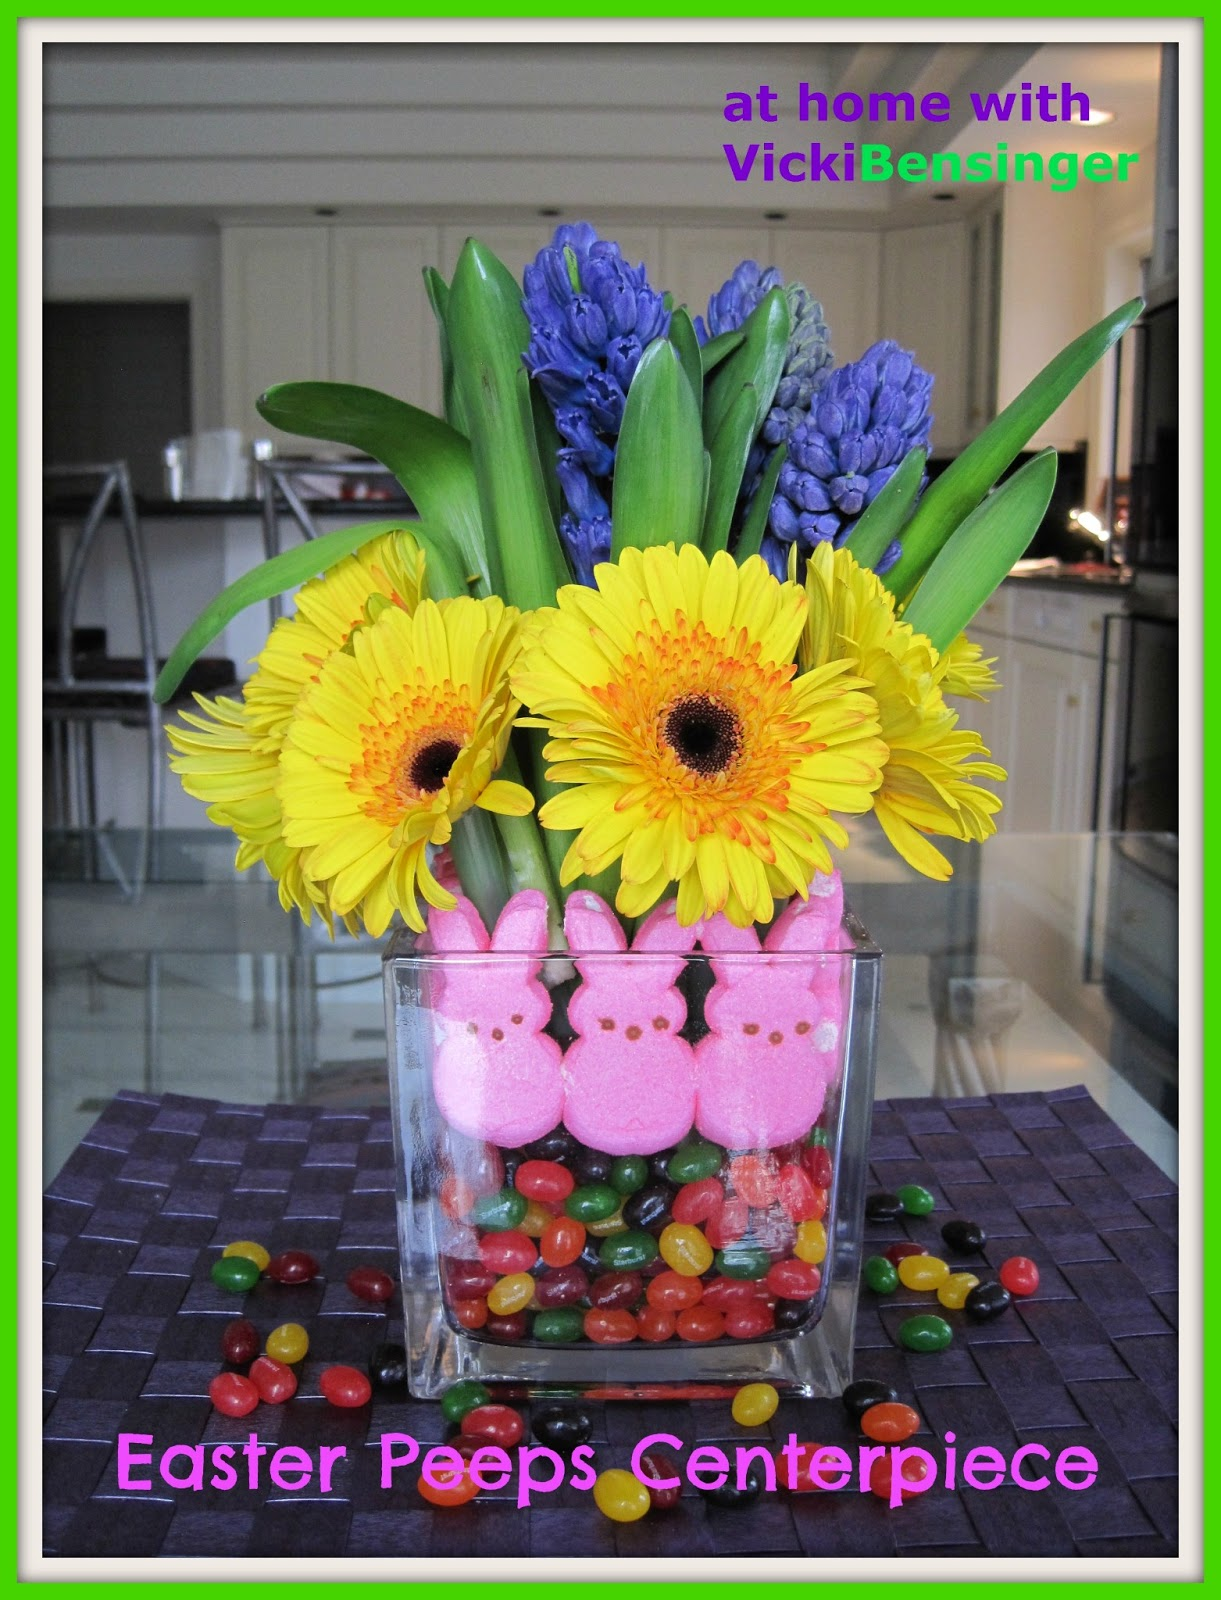 Easter Peeps Centerpiece At Home With Vicki Bensinger